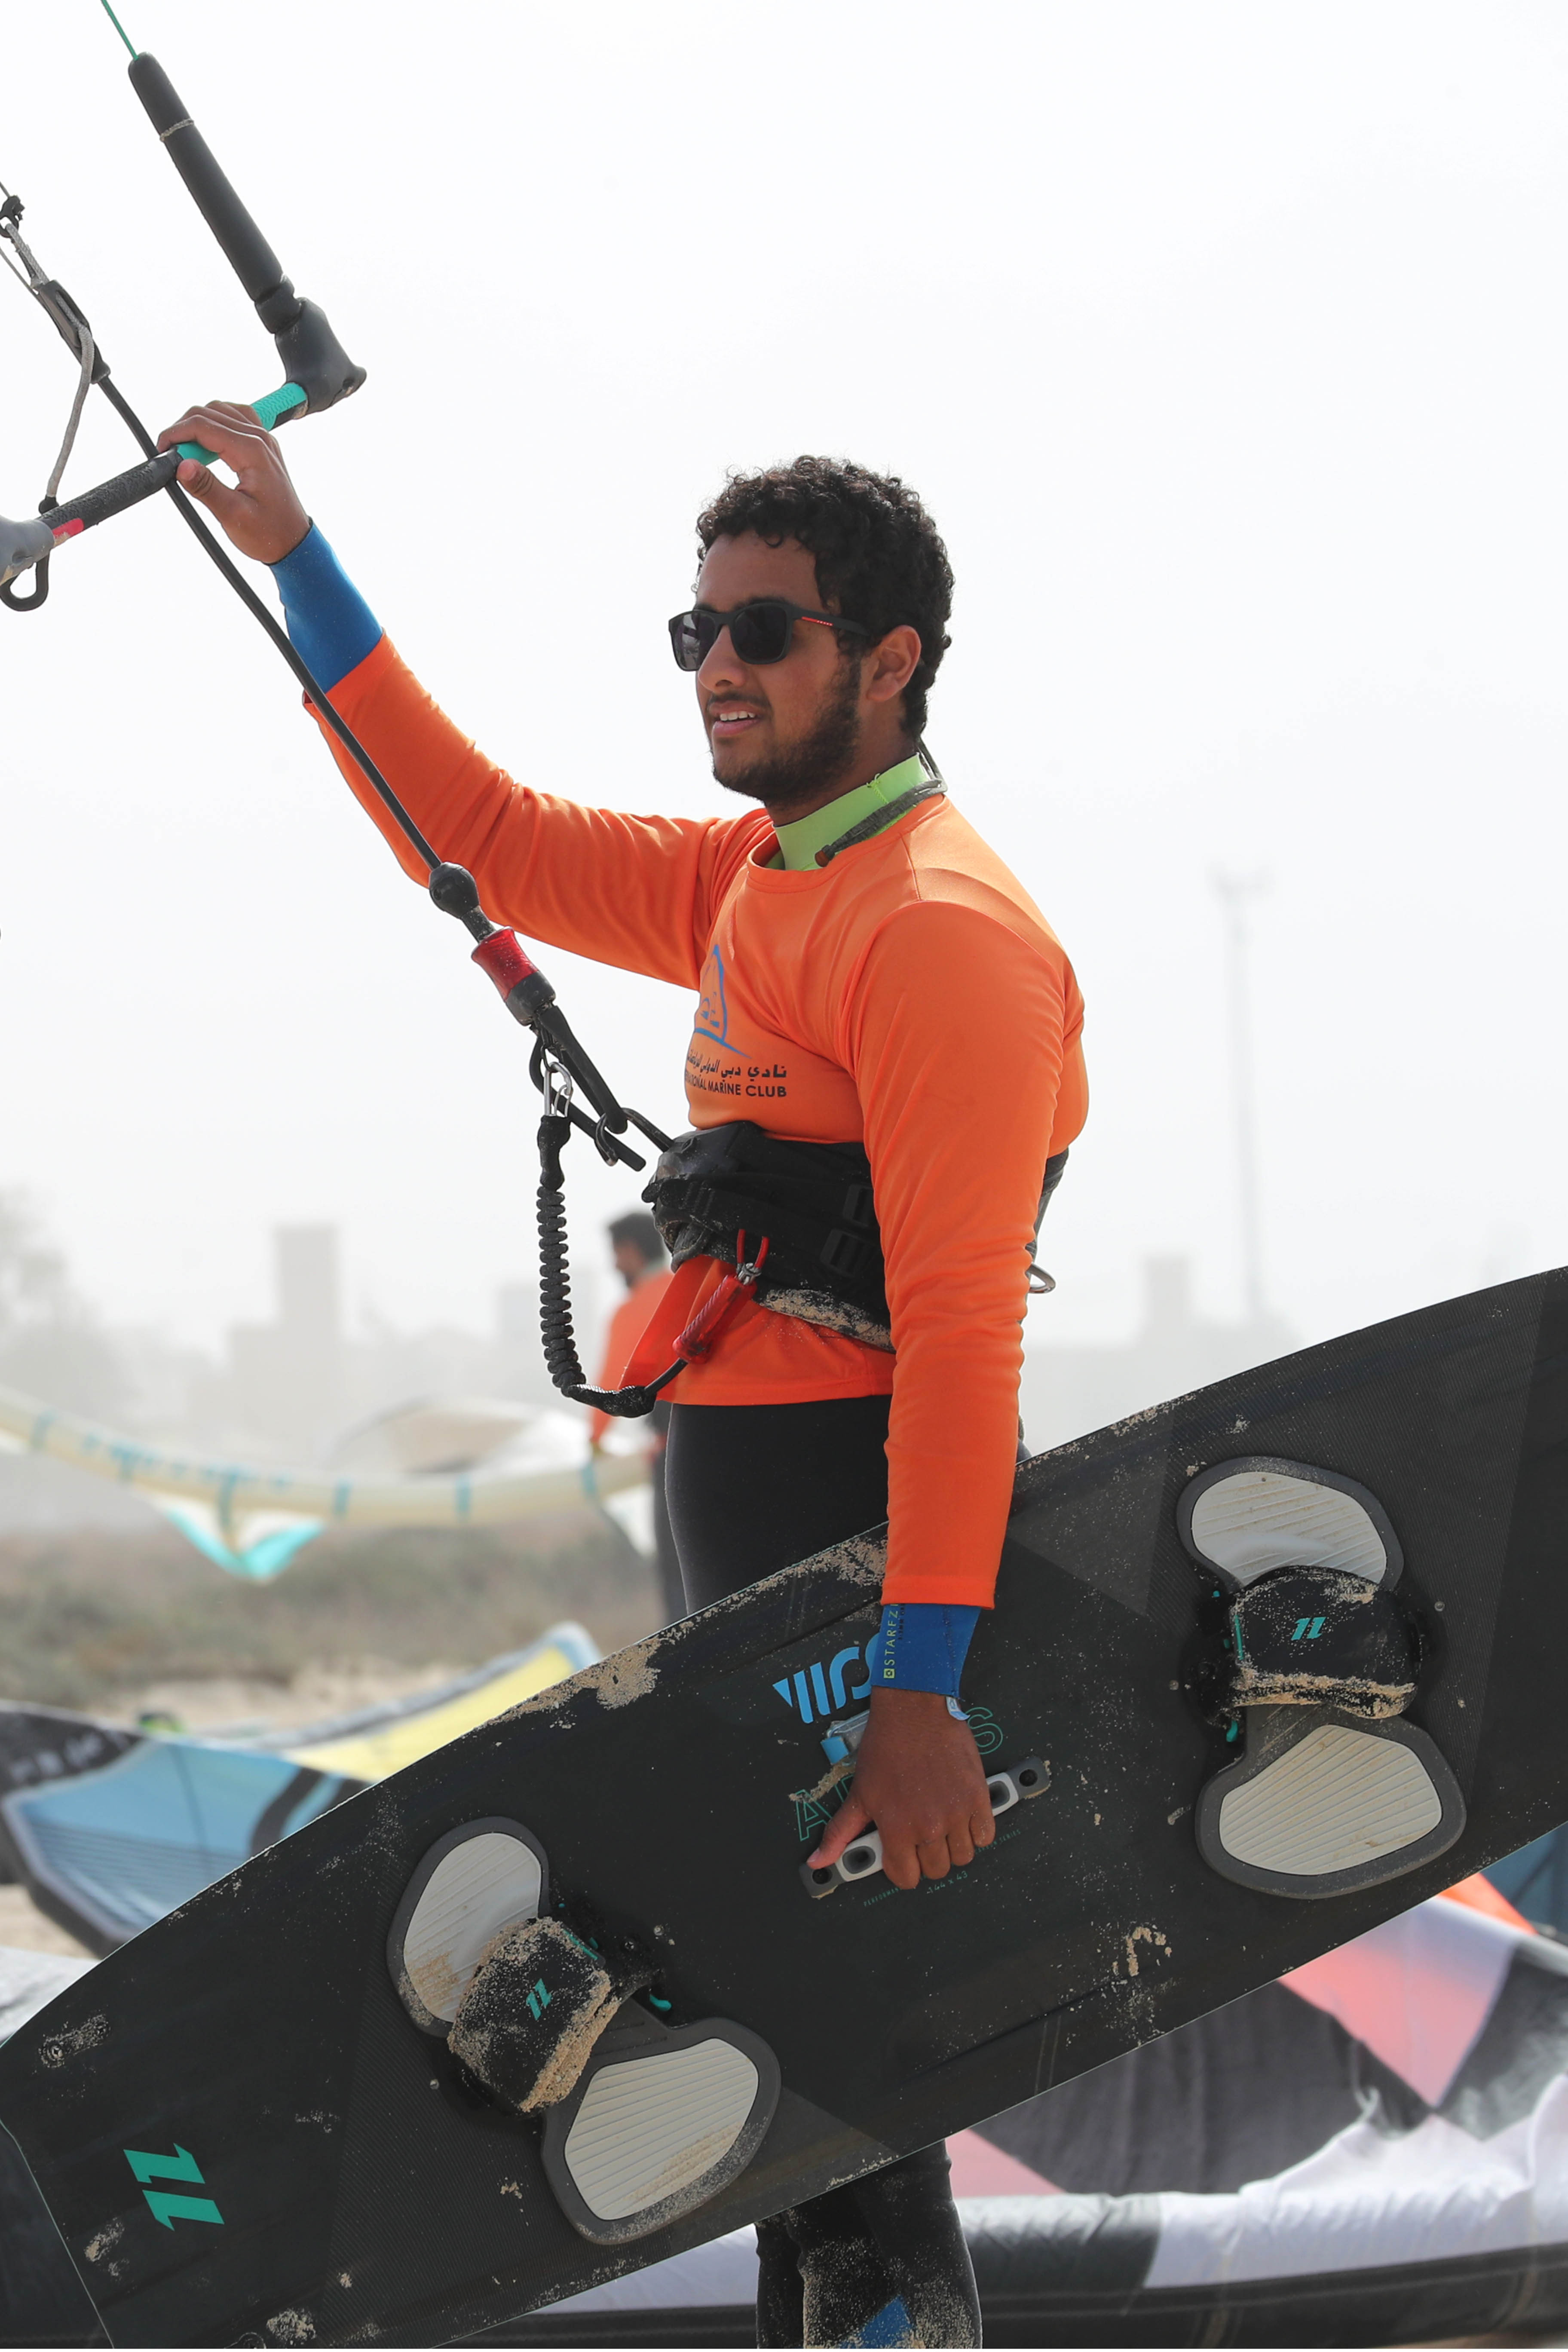 Dubai discover sports talents in Kitesurfing